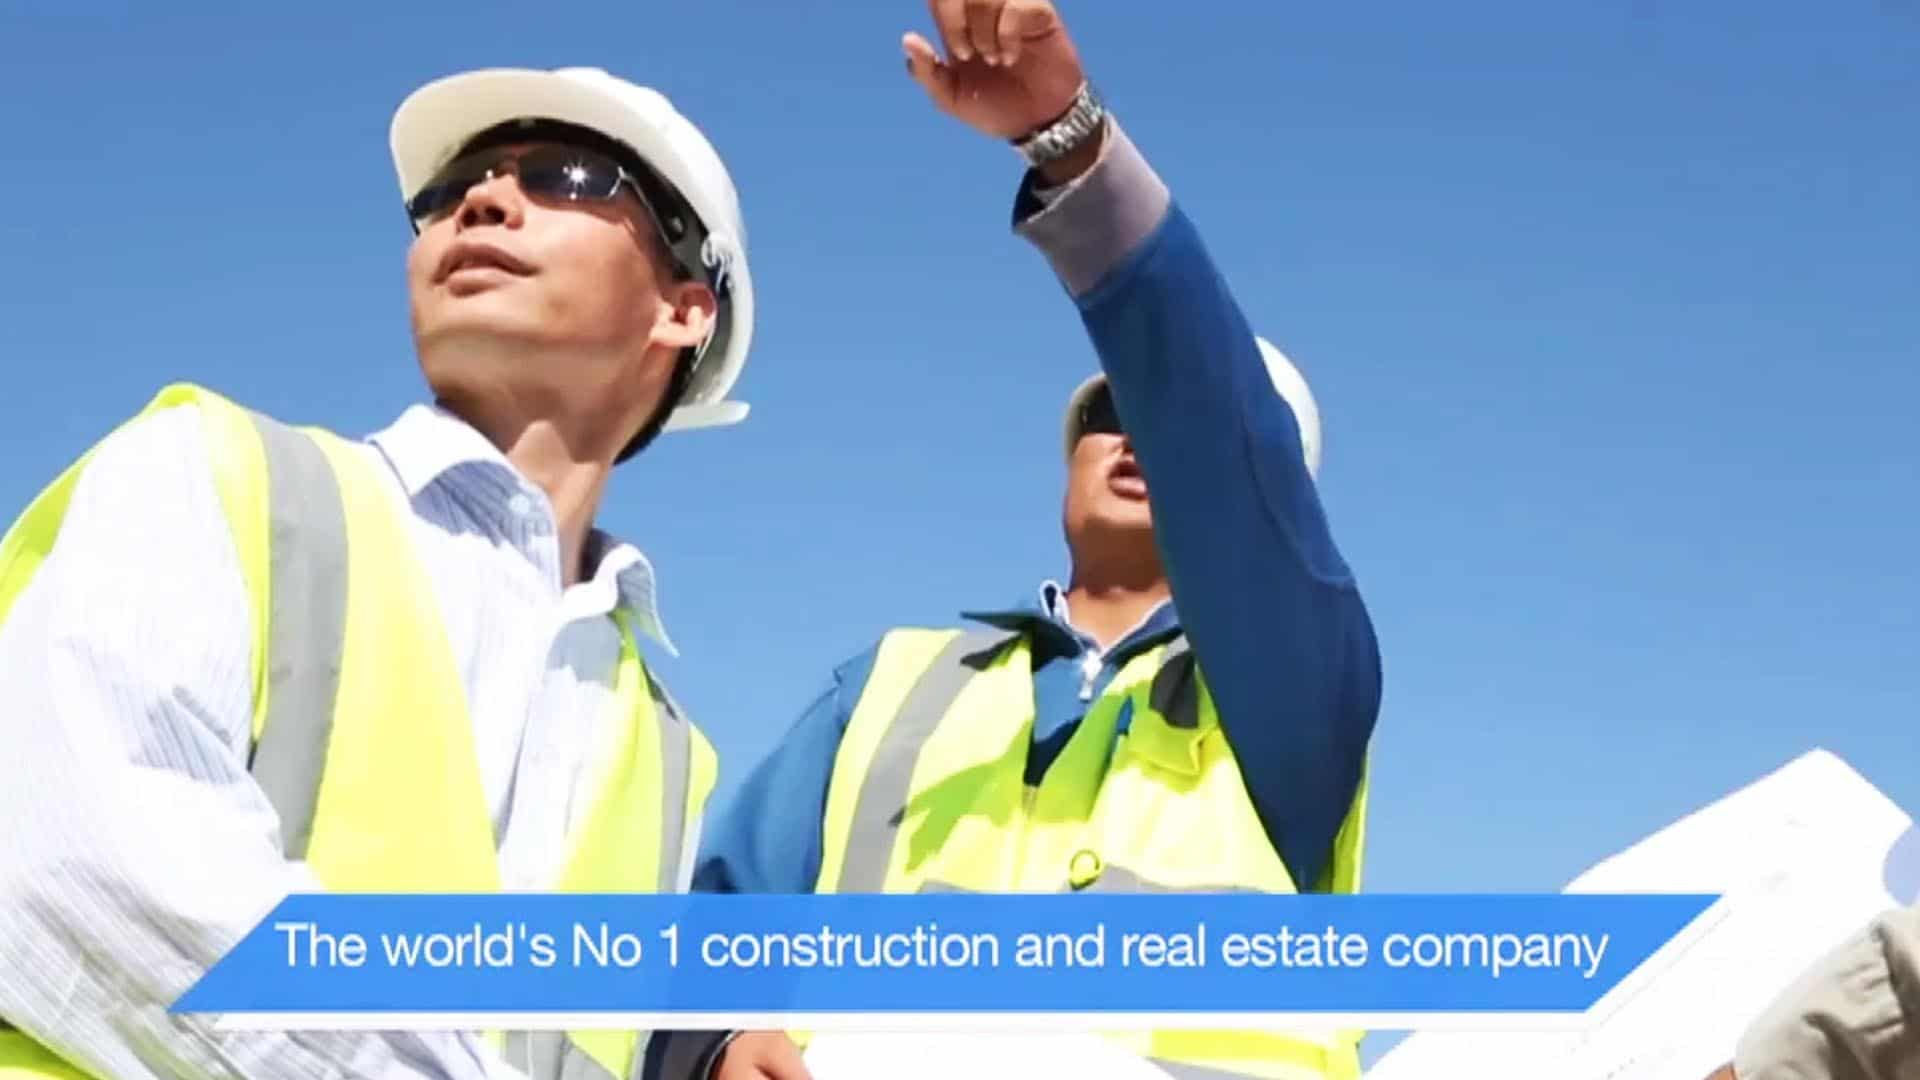 Corporate video for china state construction